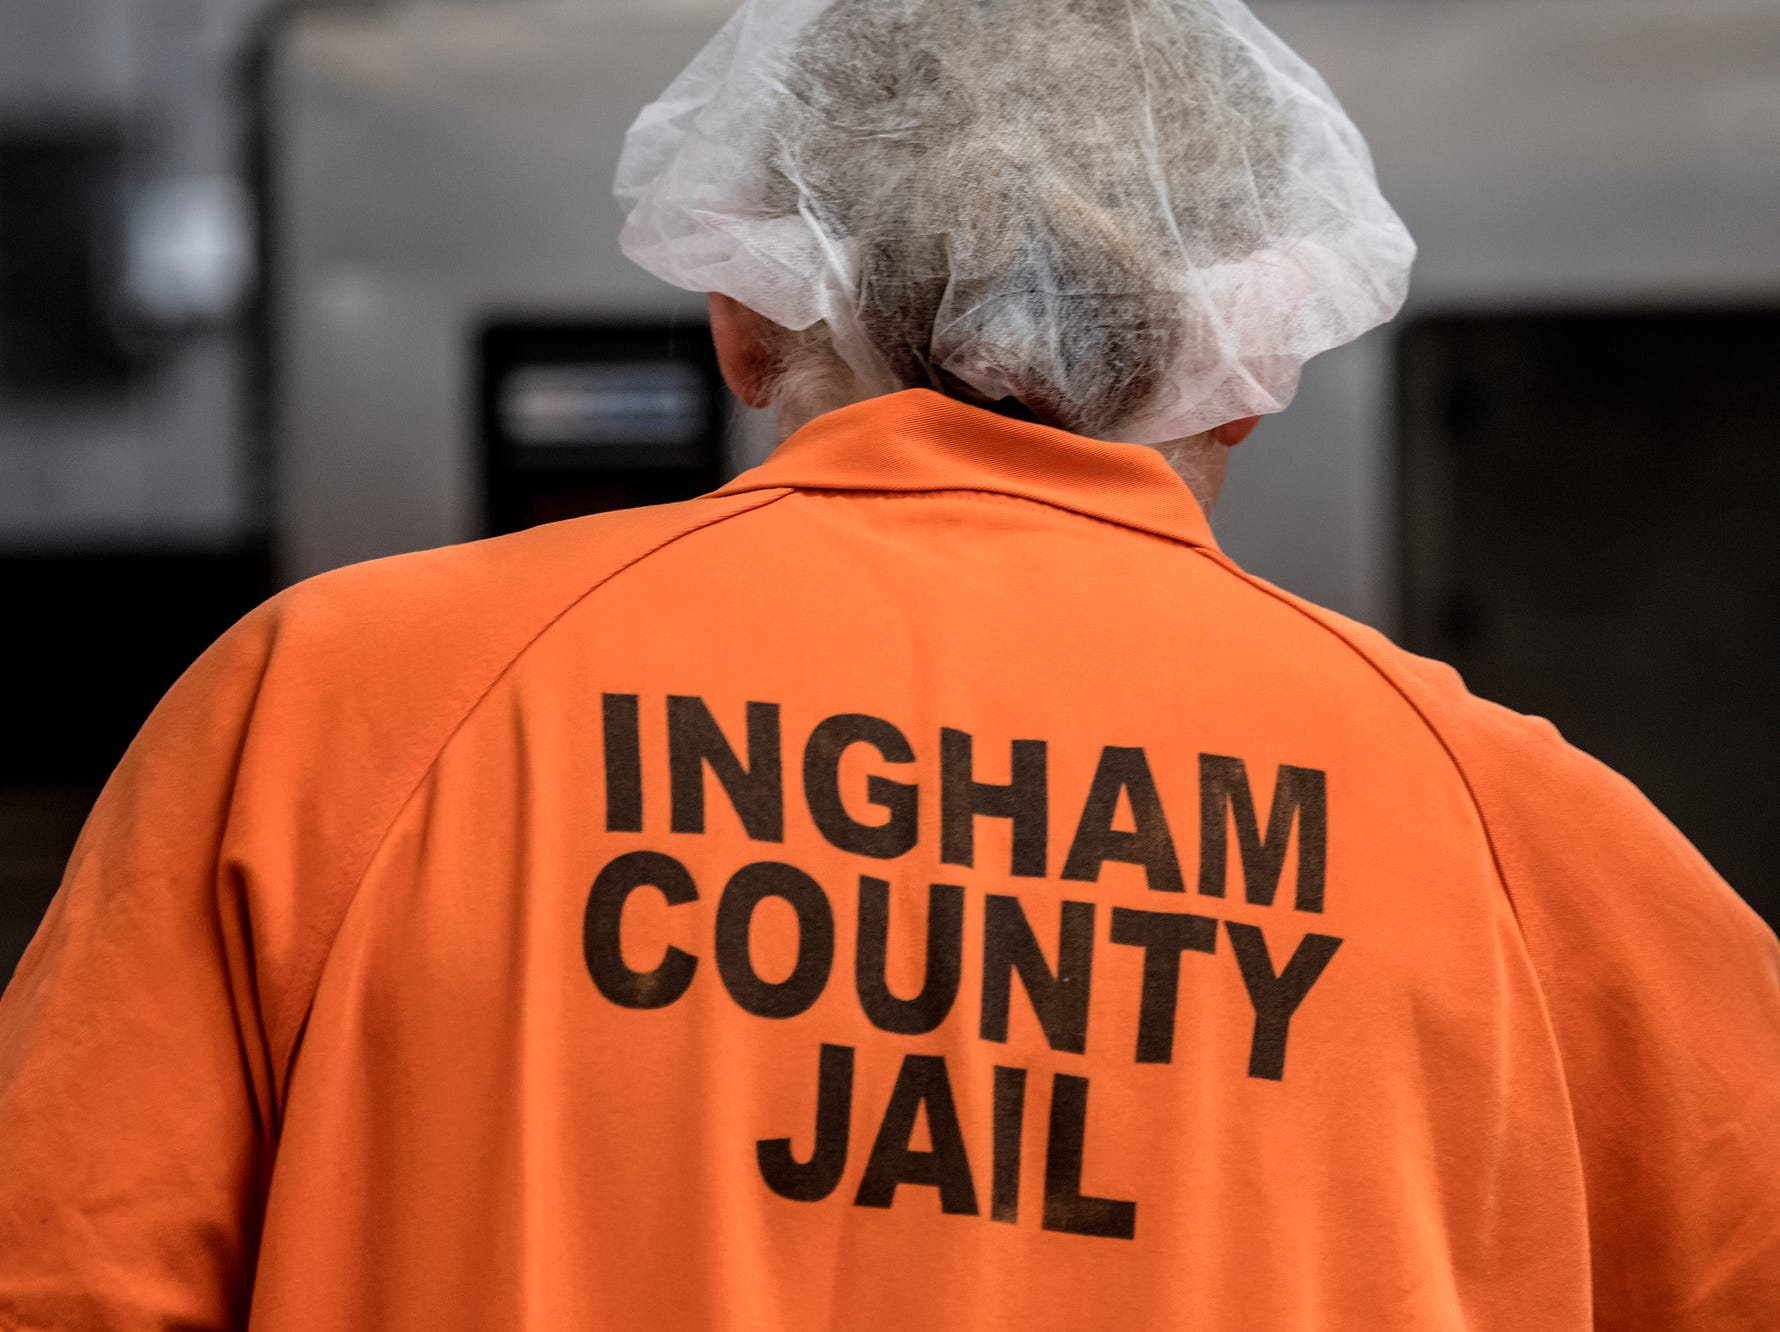 An inmate works in the kitchen during a tour of the Ingham County Jail on Tuesday, April 24, 2018, in Mason.